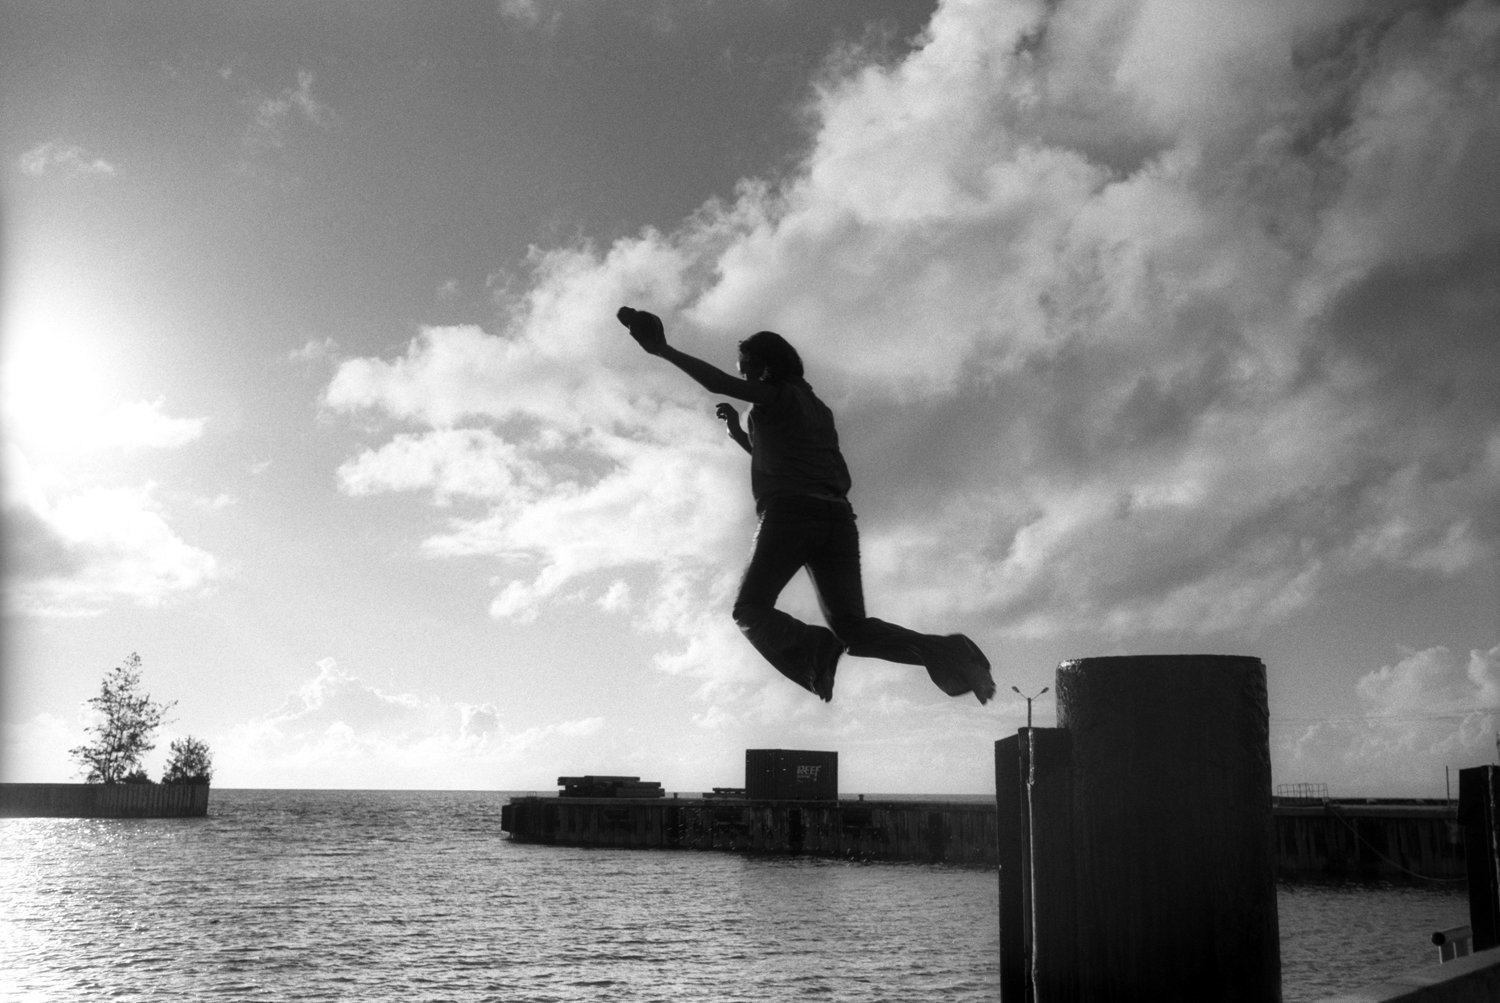 Tamara Voninski / oculi/ Vu